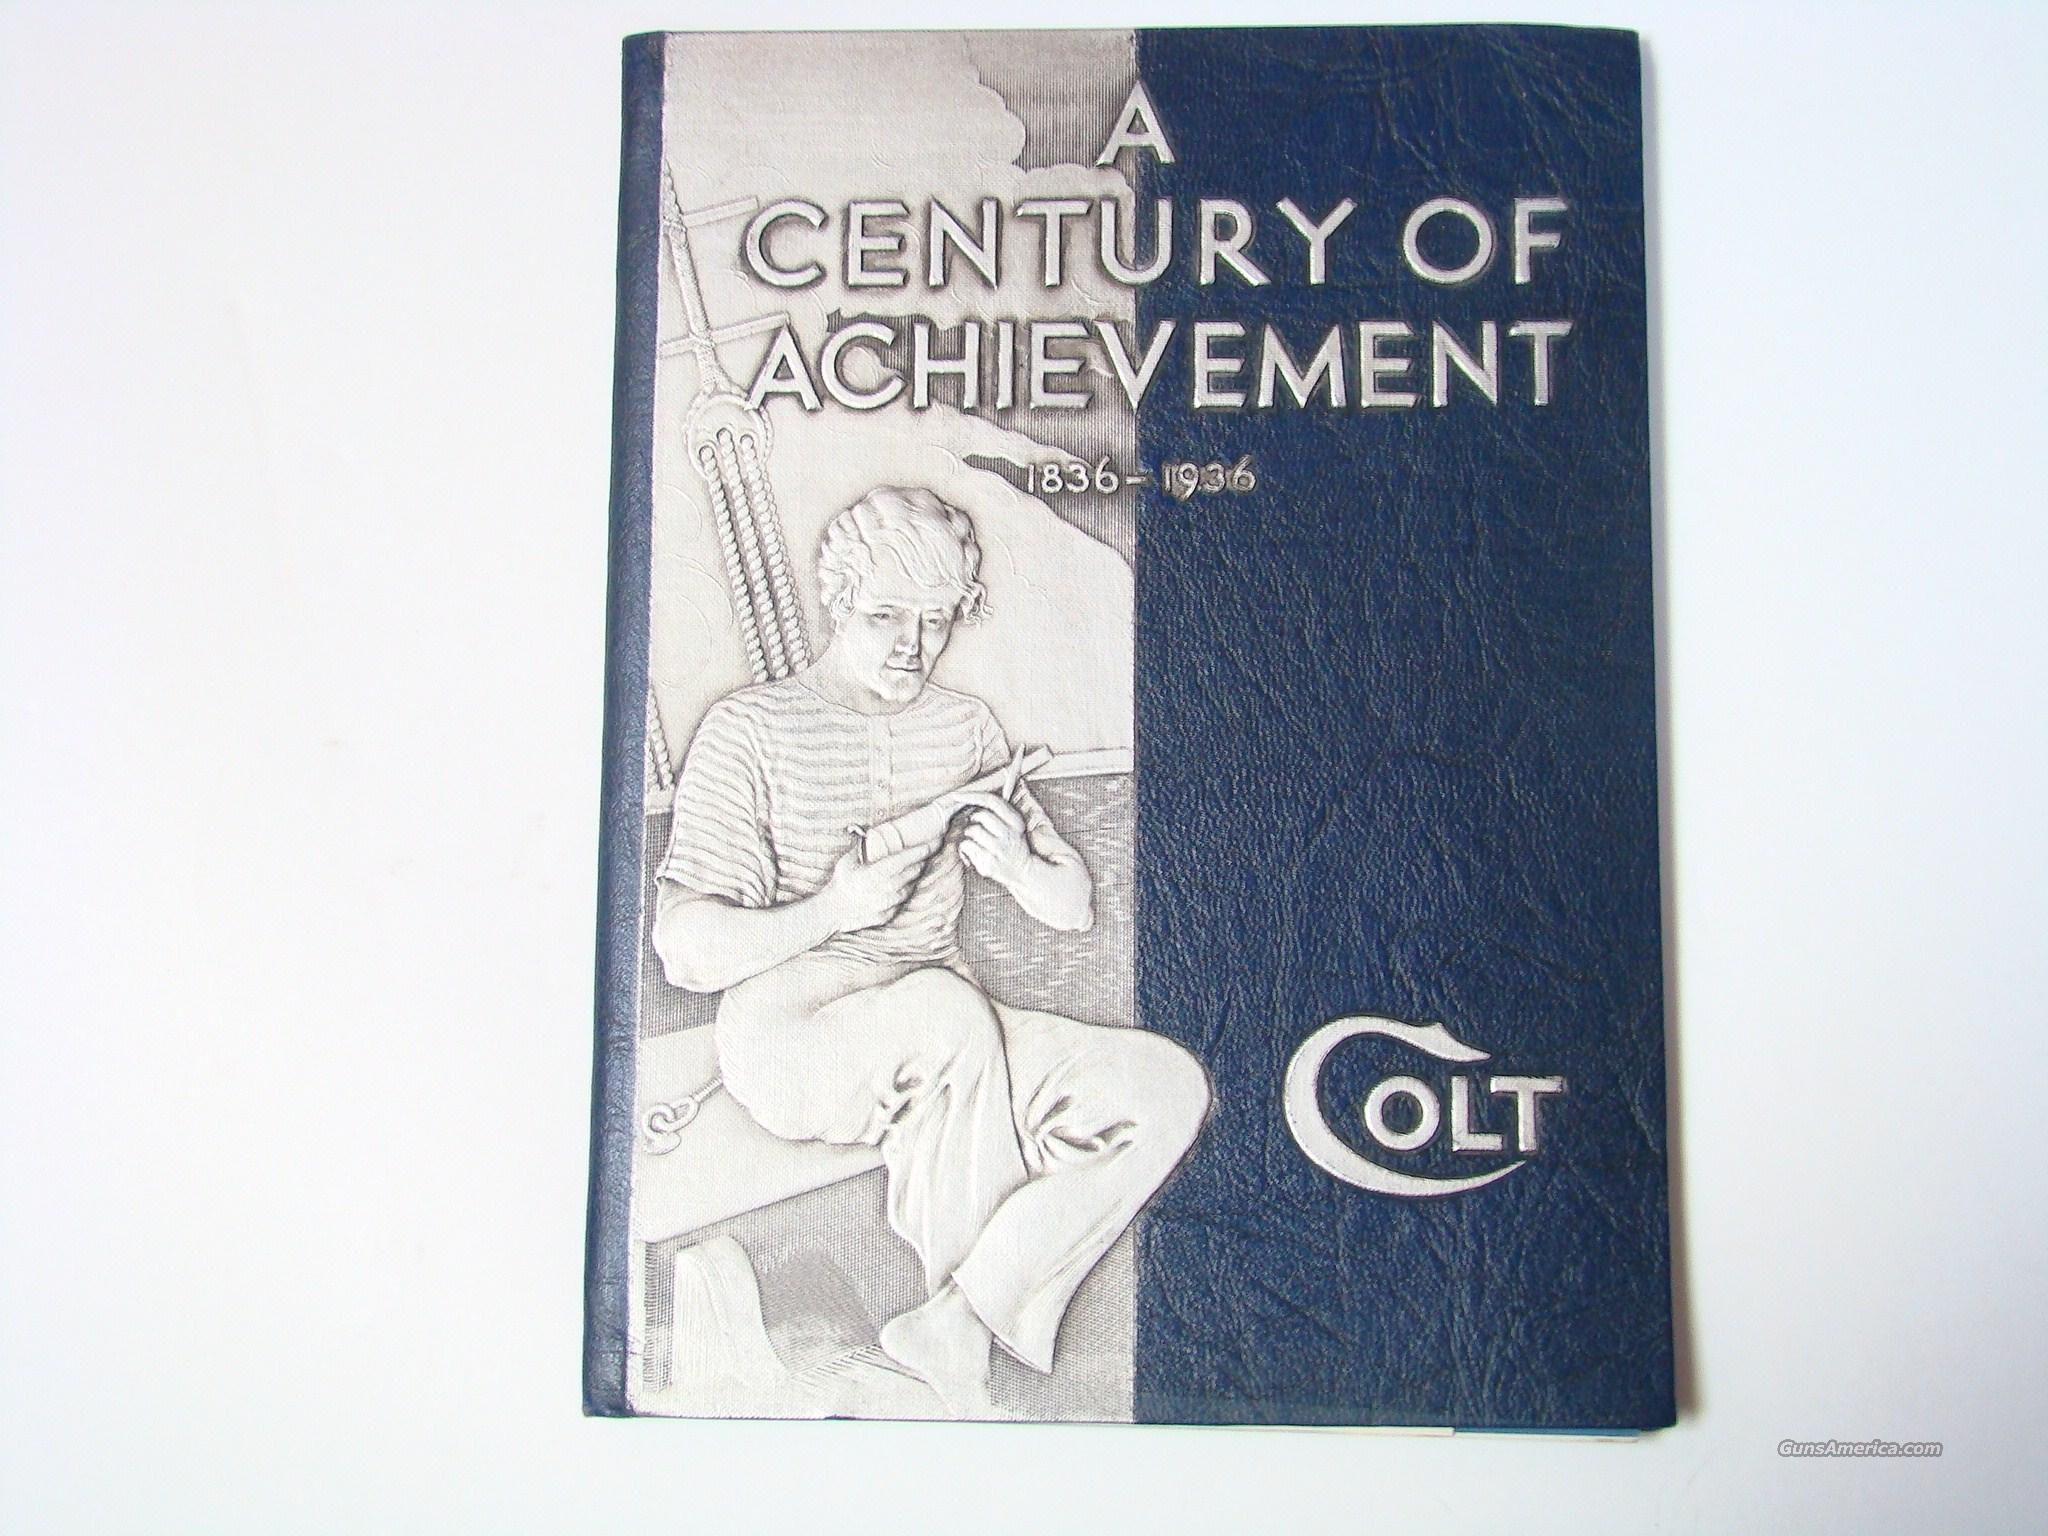 A CENTURY OF ACHIEVEMENT 1836-1936 COLT  Non-Guns > Books & Magazines